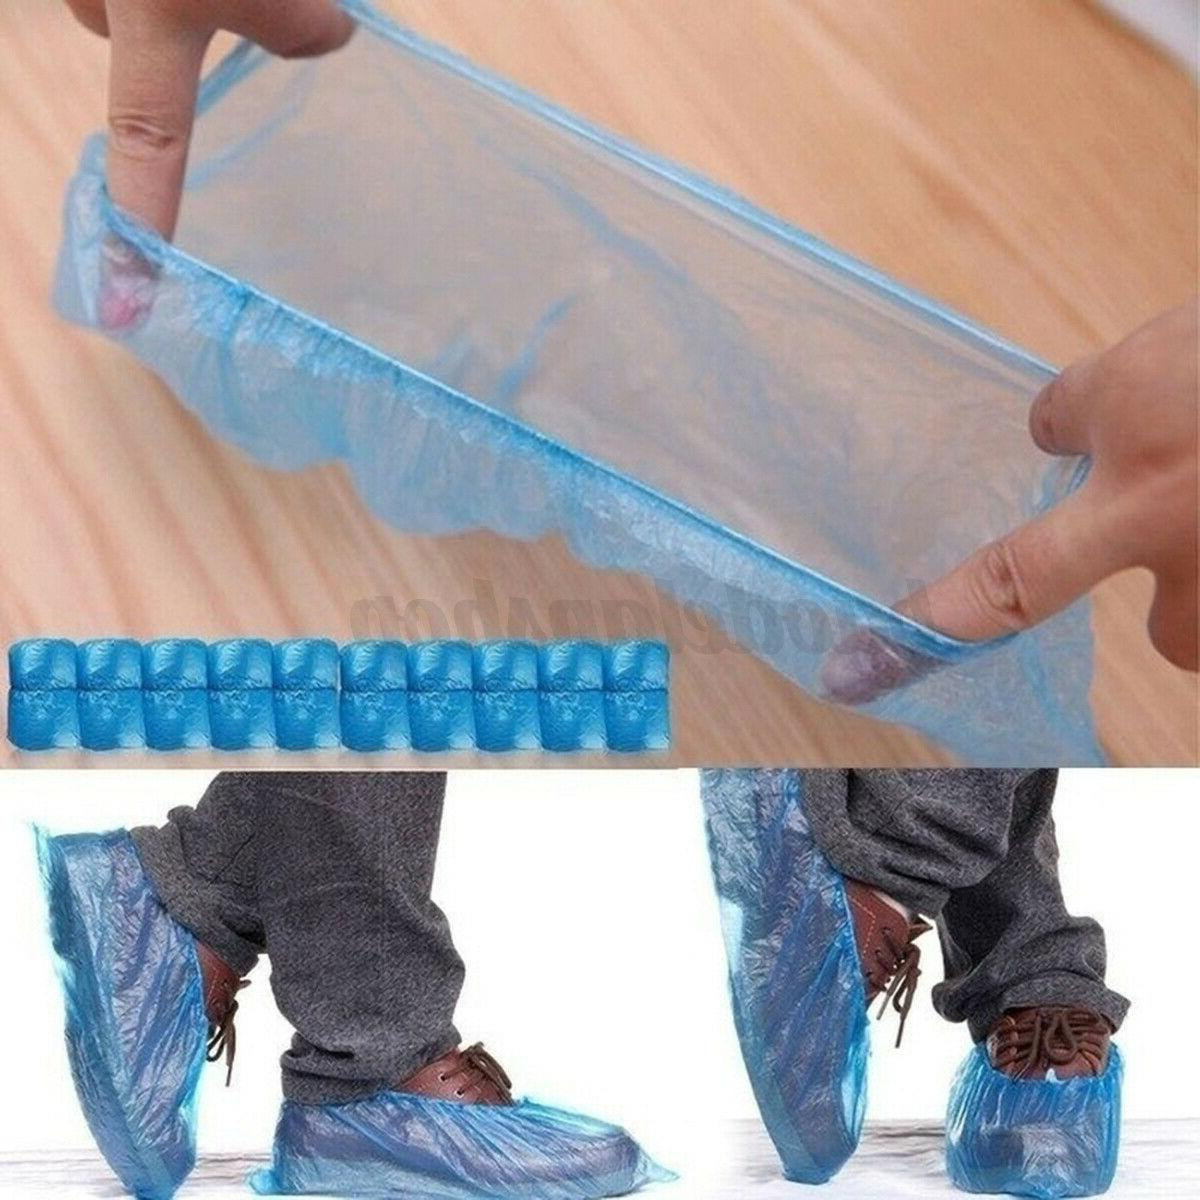 100-500PC Disposable Waterproof Protector